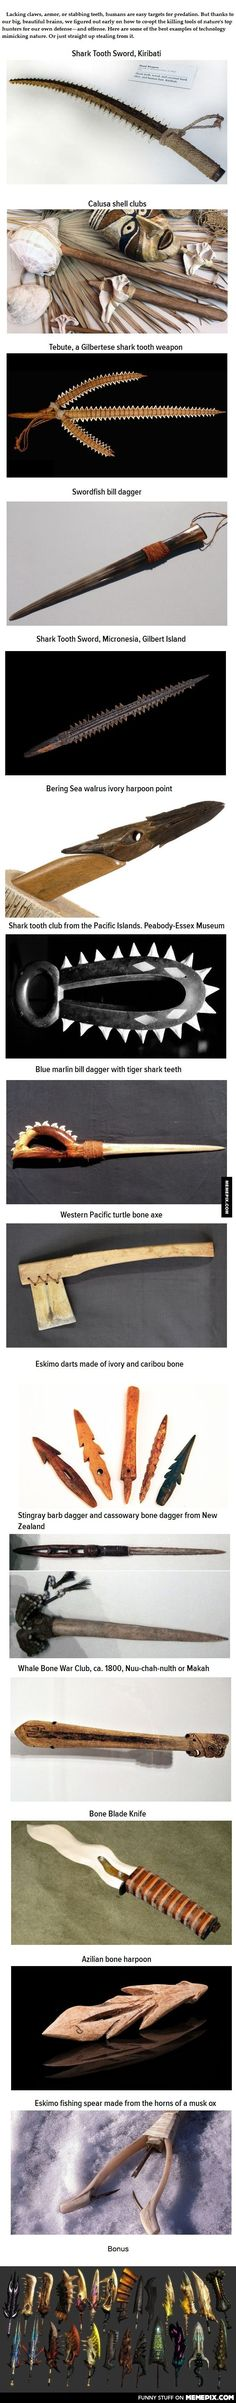 Human Weapons Made from Animal Weapons